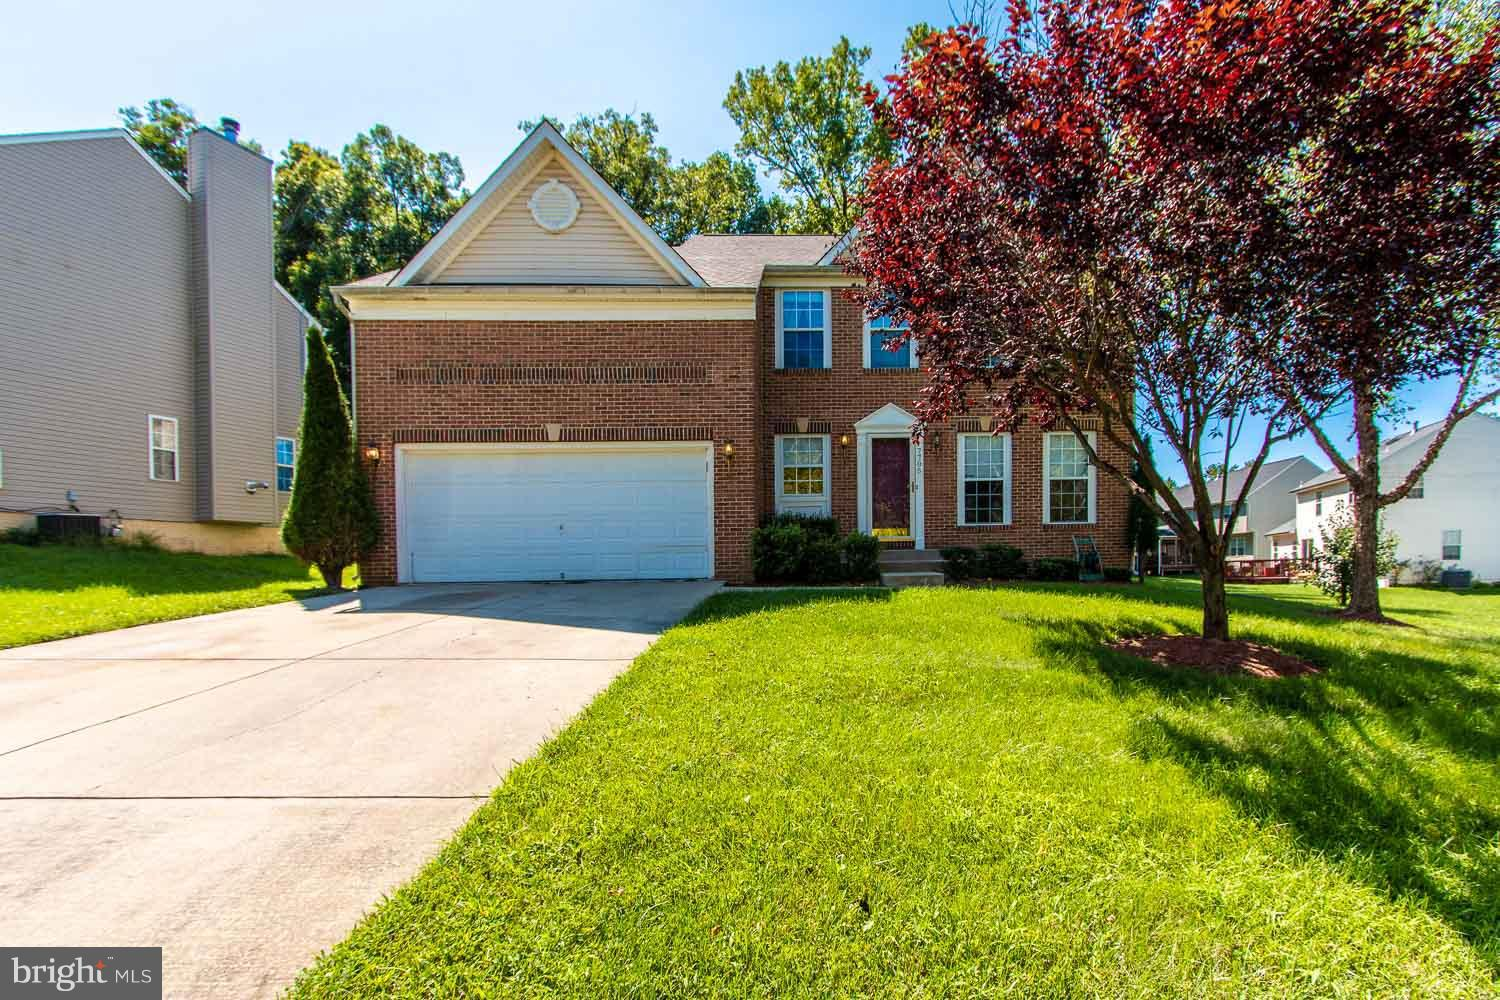 7705 STANMORE DRIVE, BELTSVILLE, MD 20705